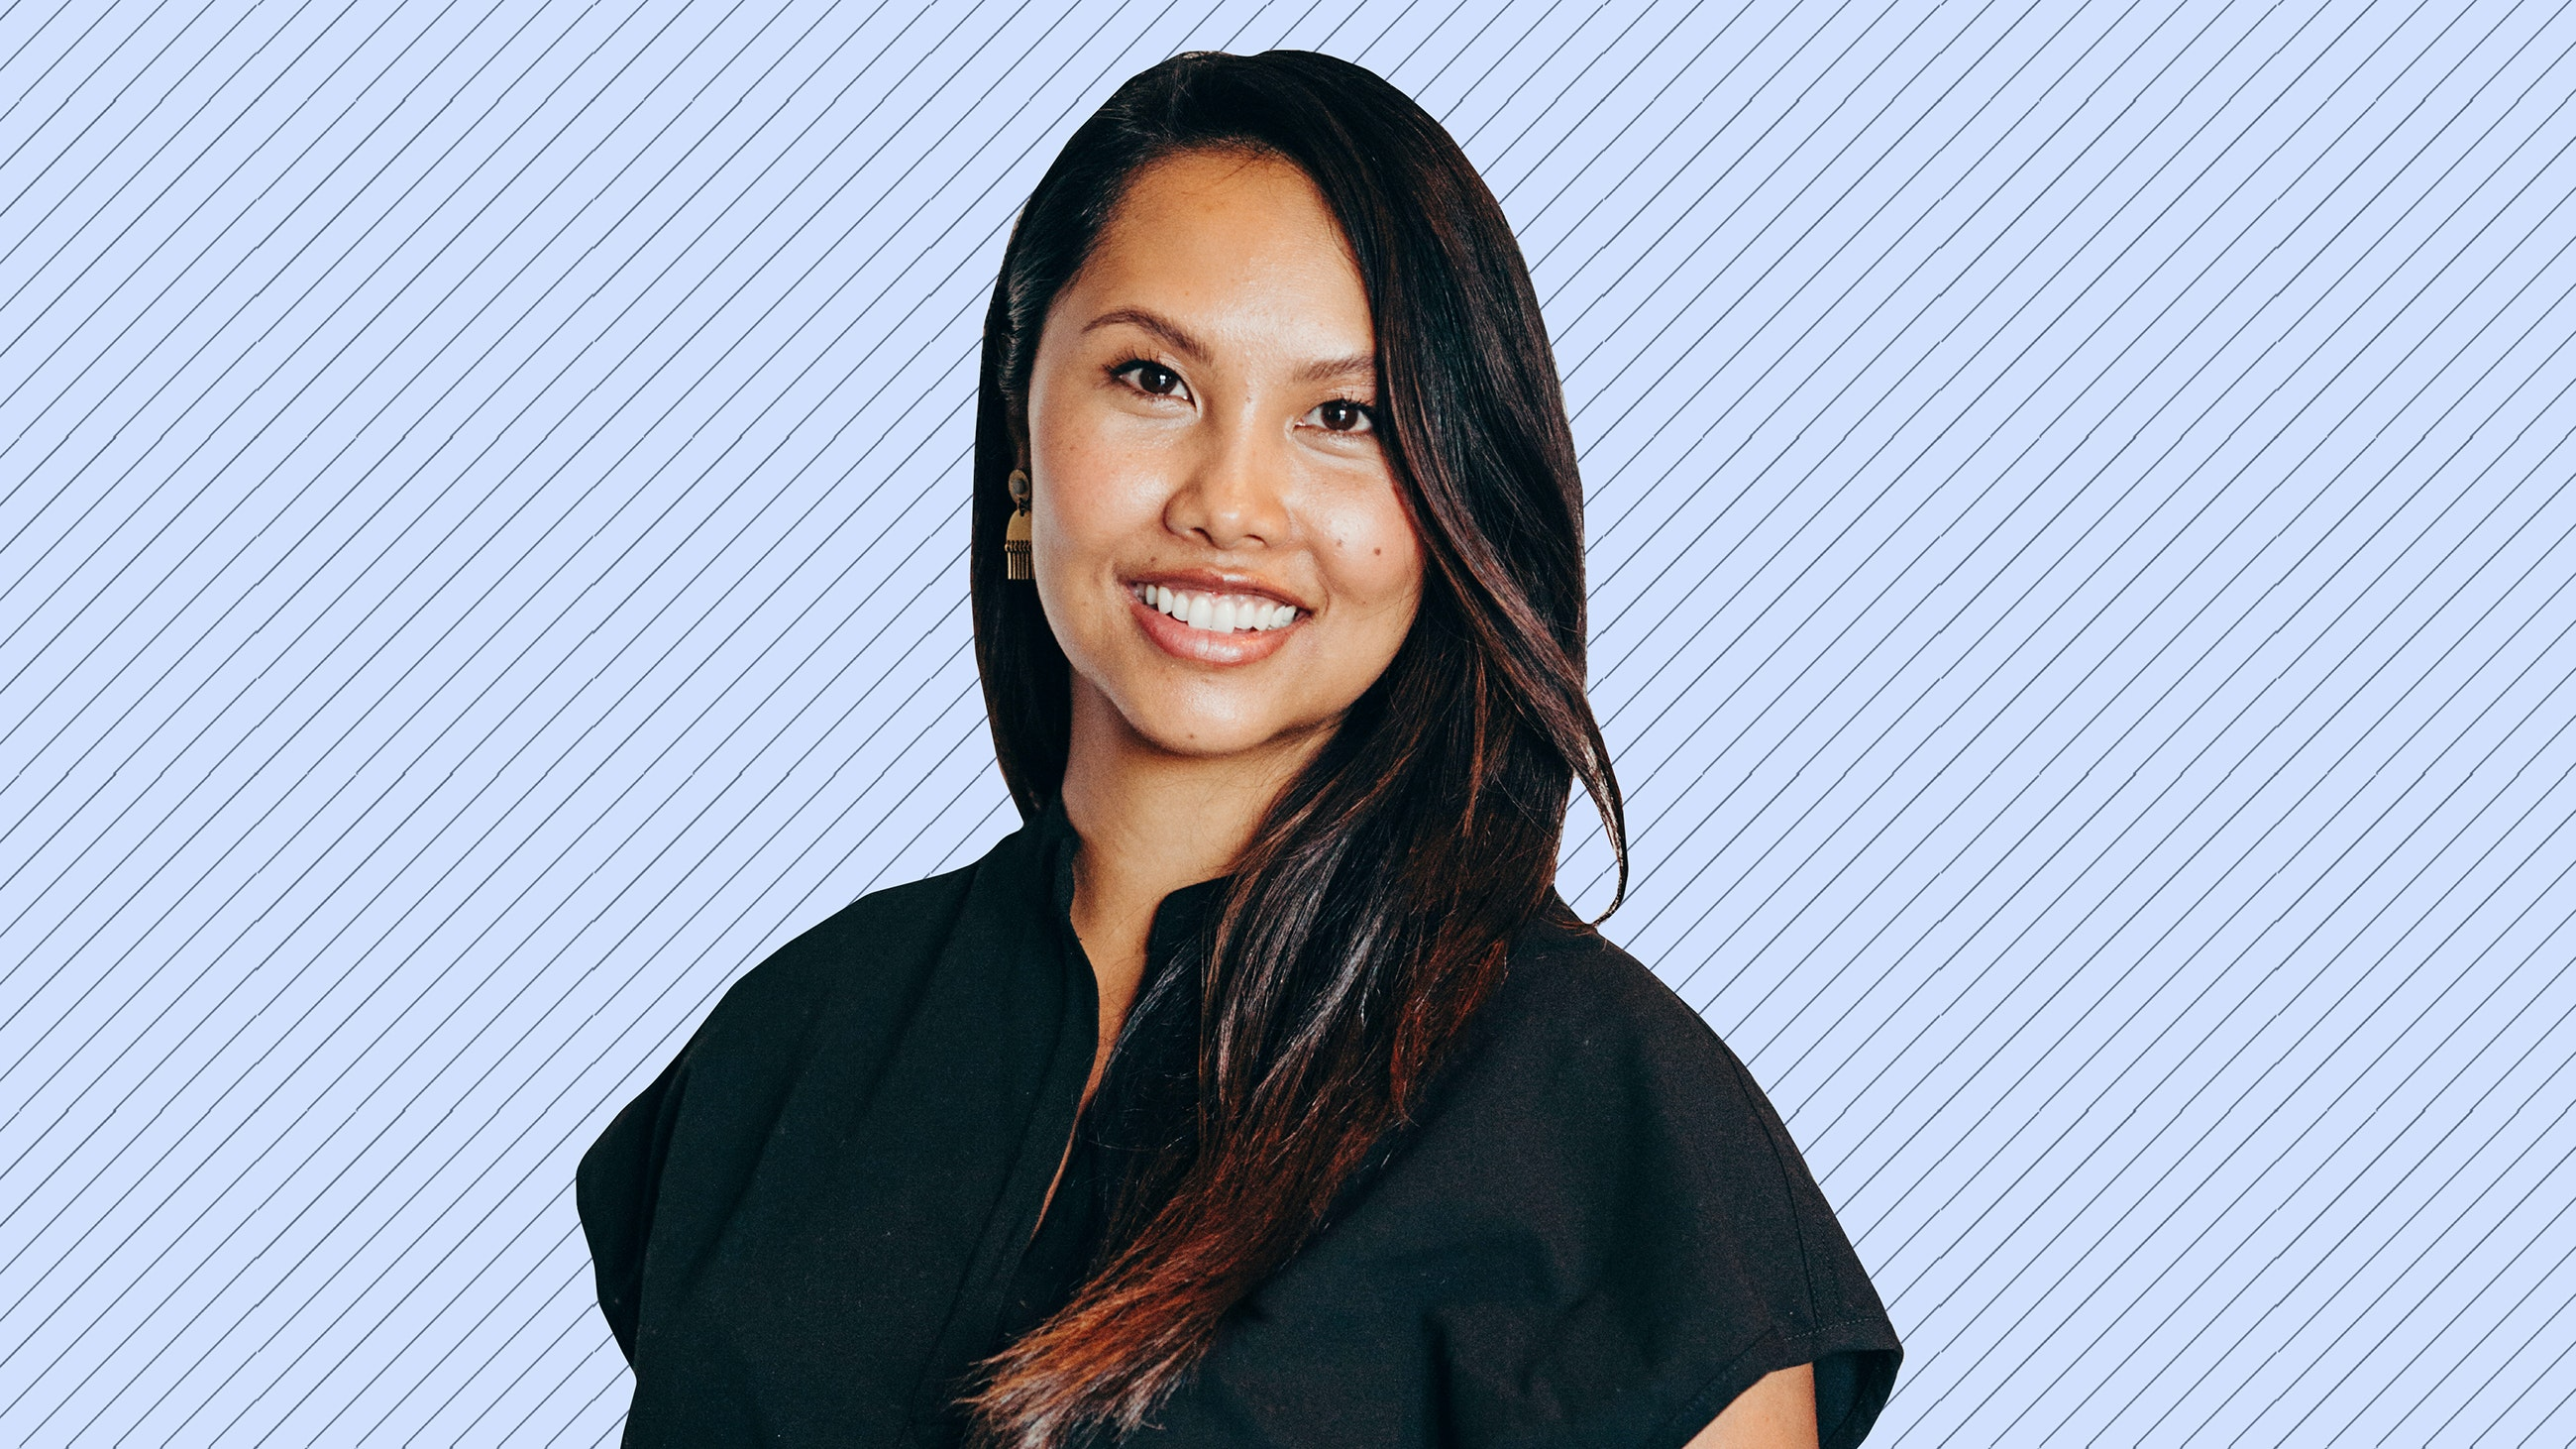 RN and Injectables Expert Vanessa Lee Shares Her Top Tips on Her Skincare Regimen, Self-Care, and Finding a Skilled Provider